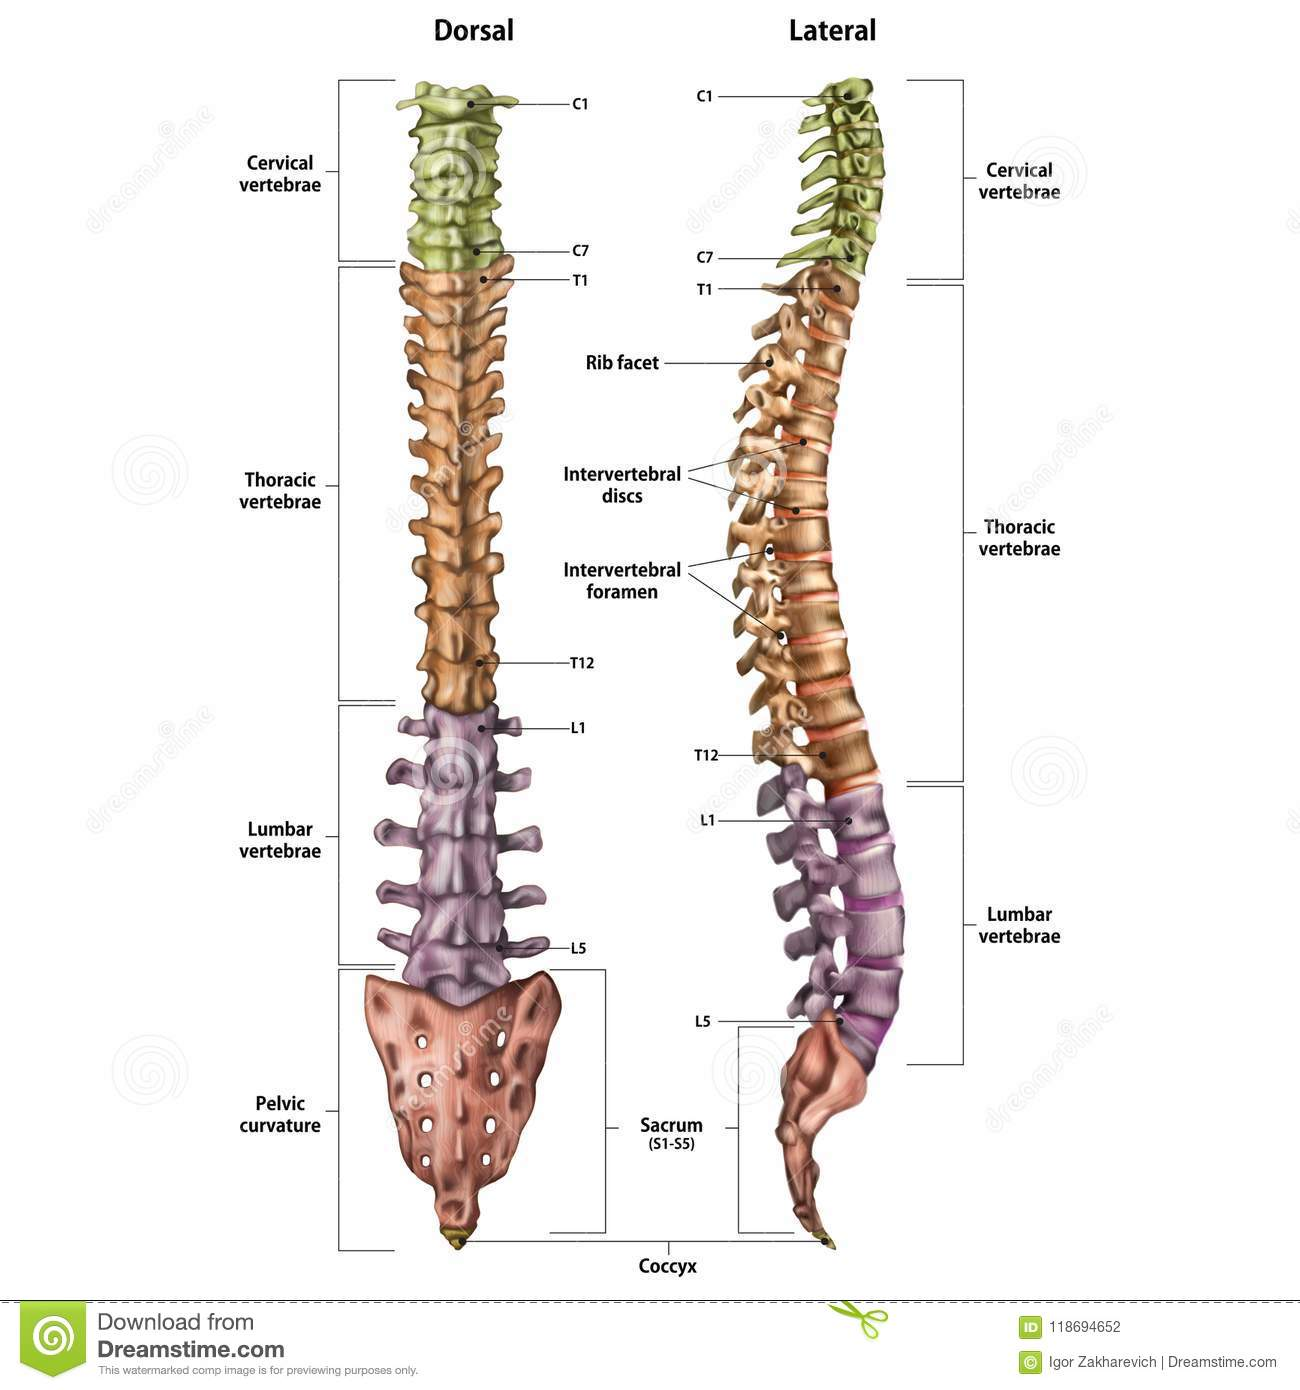 Illustration Of The Human Spine With The Name And Description Of All ...